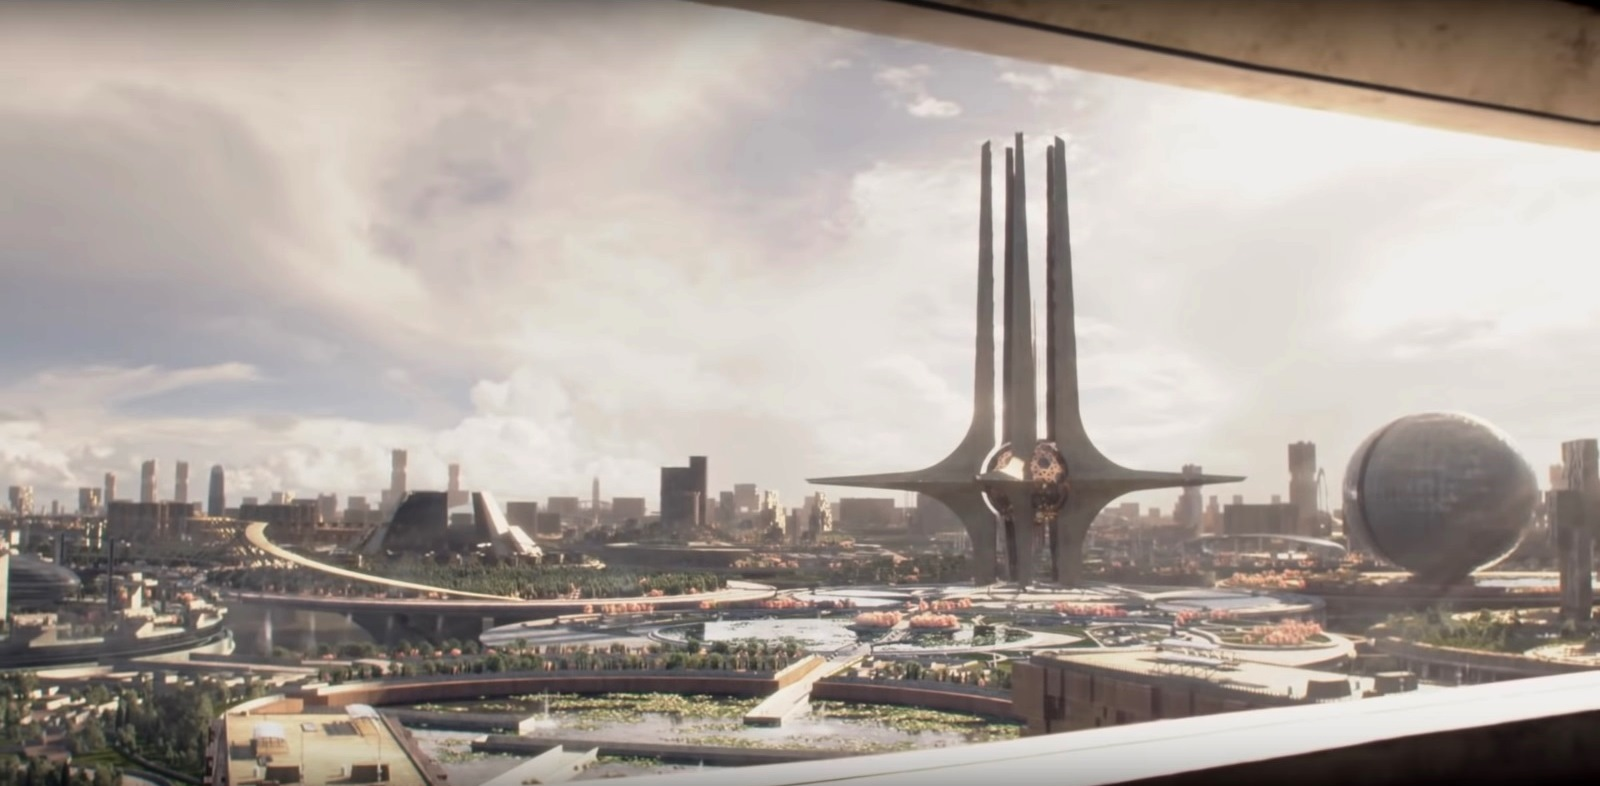 The utopian future of New London in Brave New World (2020)